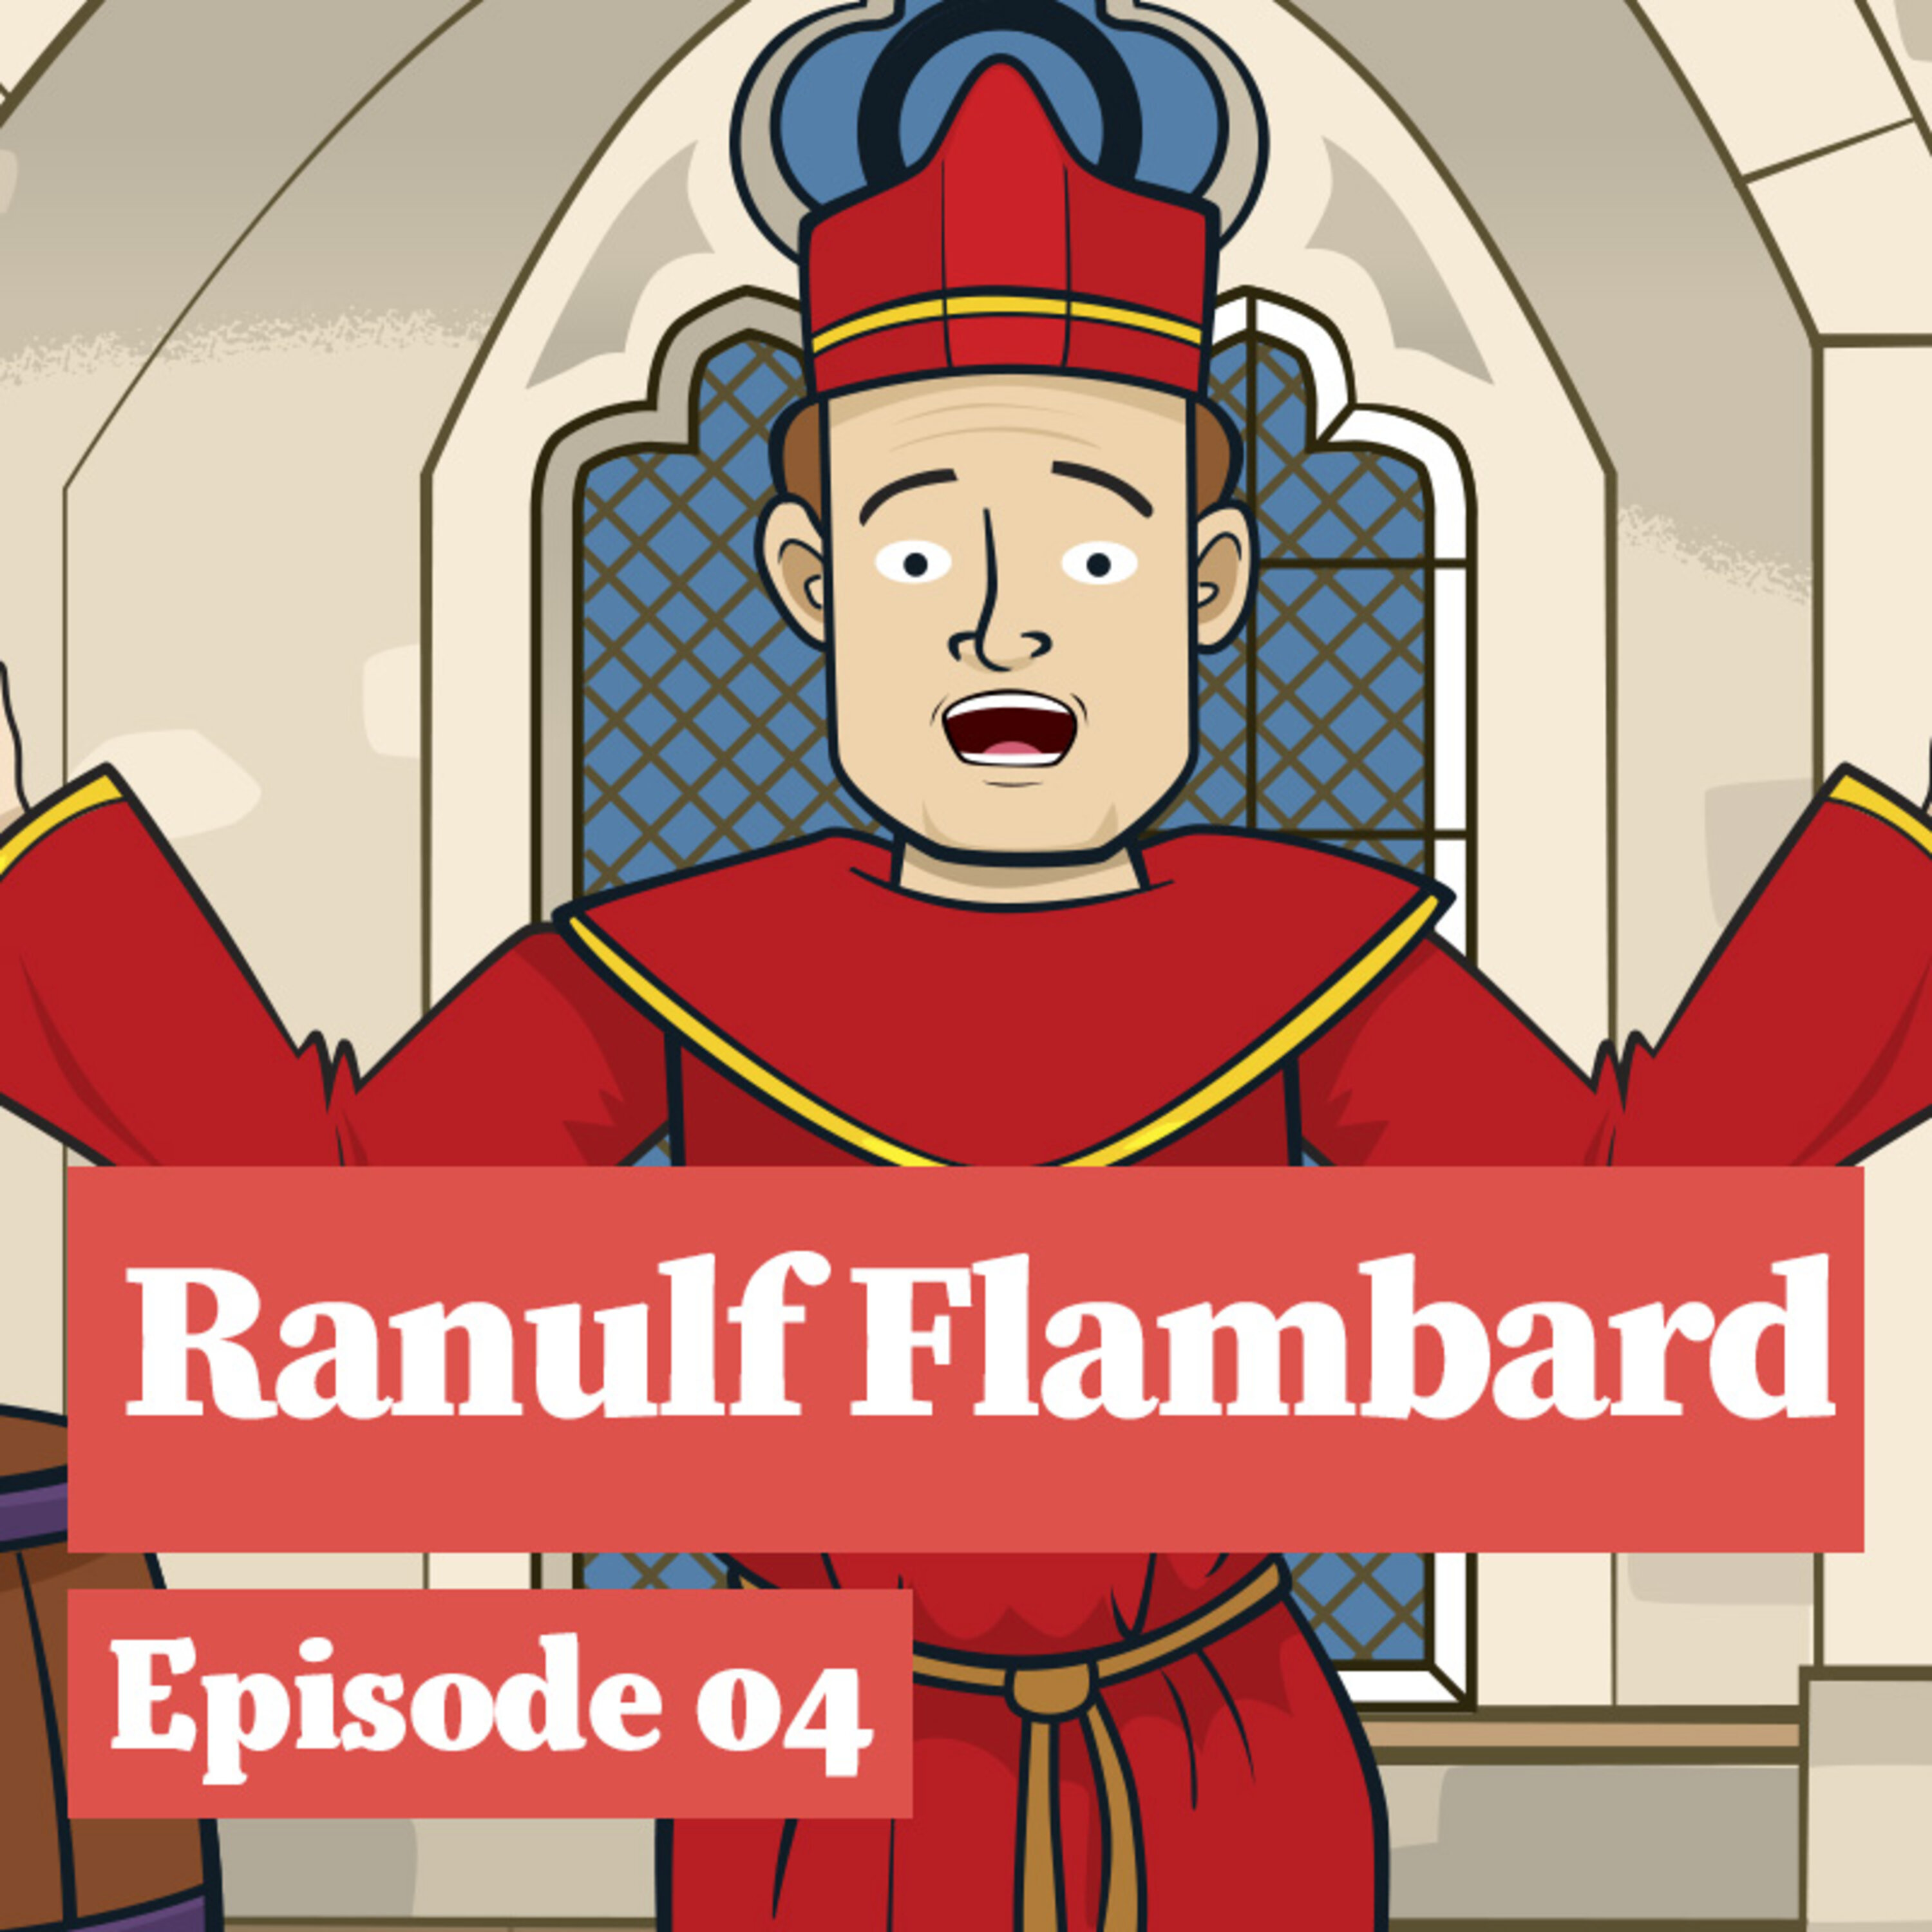 Ranulf Flambard: Imprisoned in his own Tower